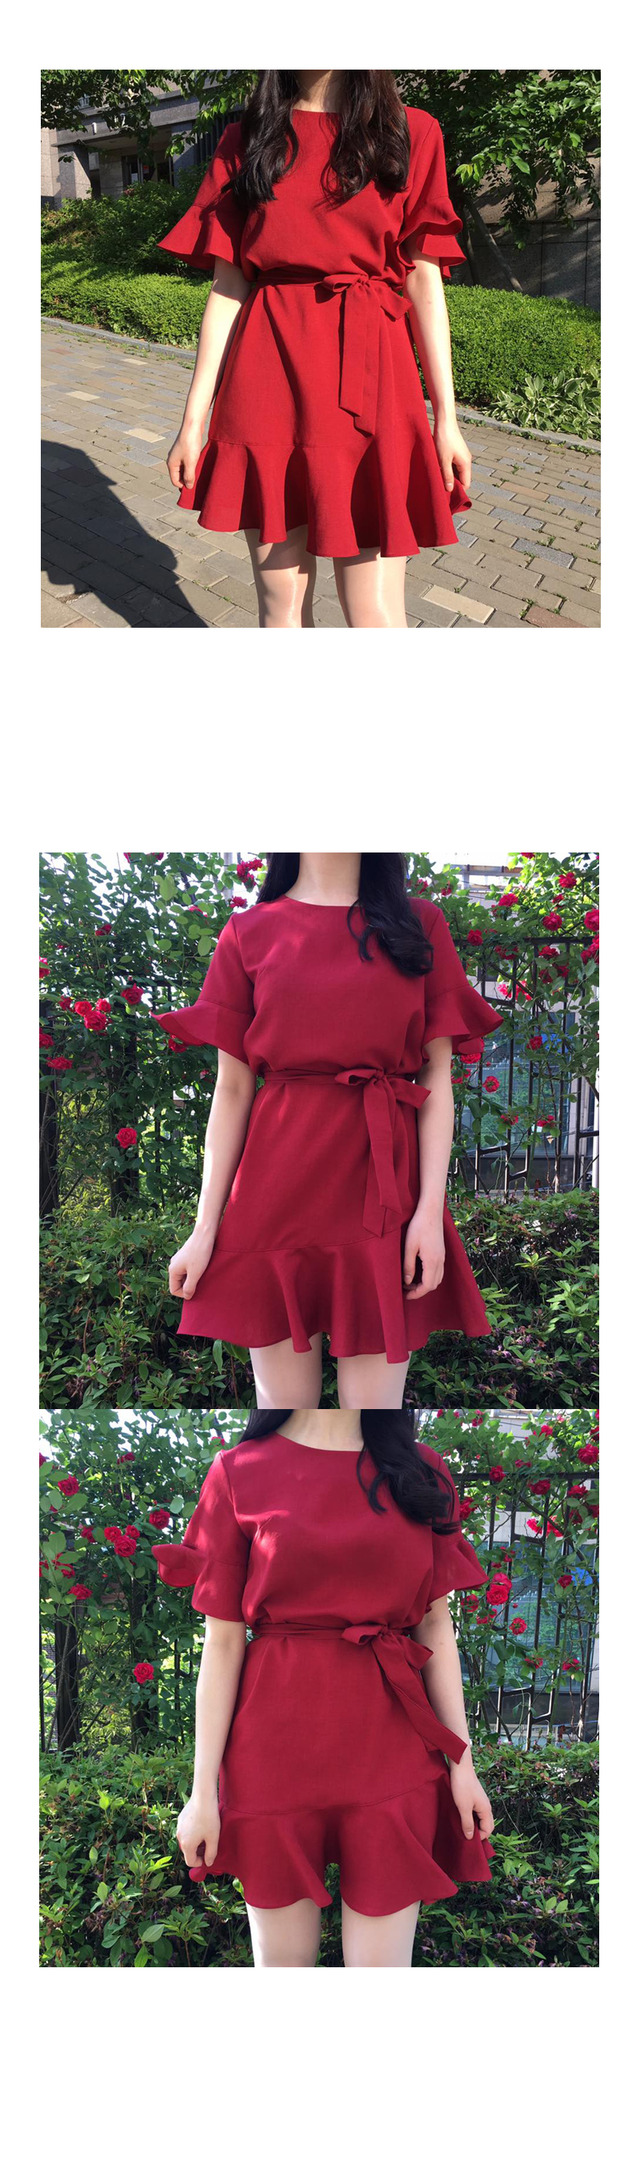 Frill Ribbon String Mini Dress